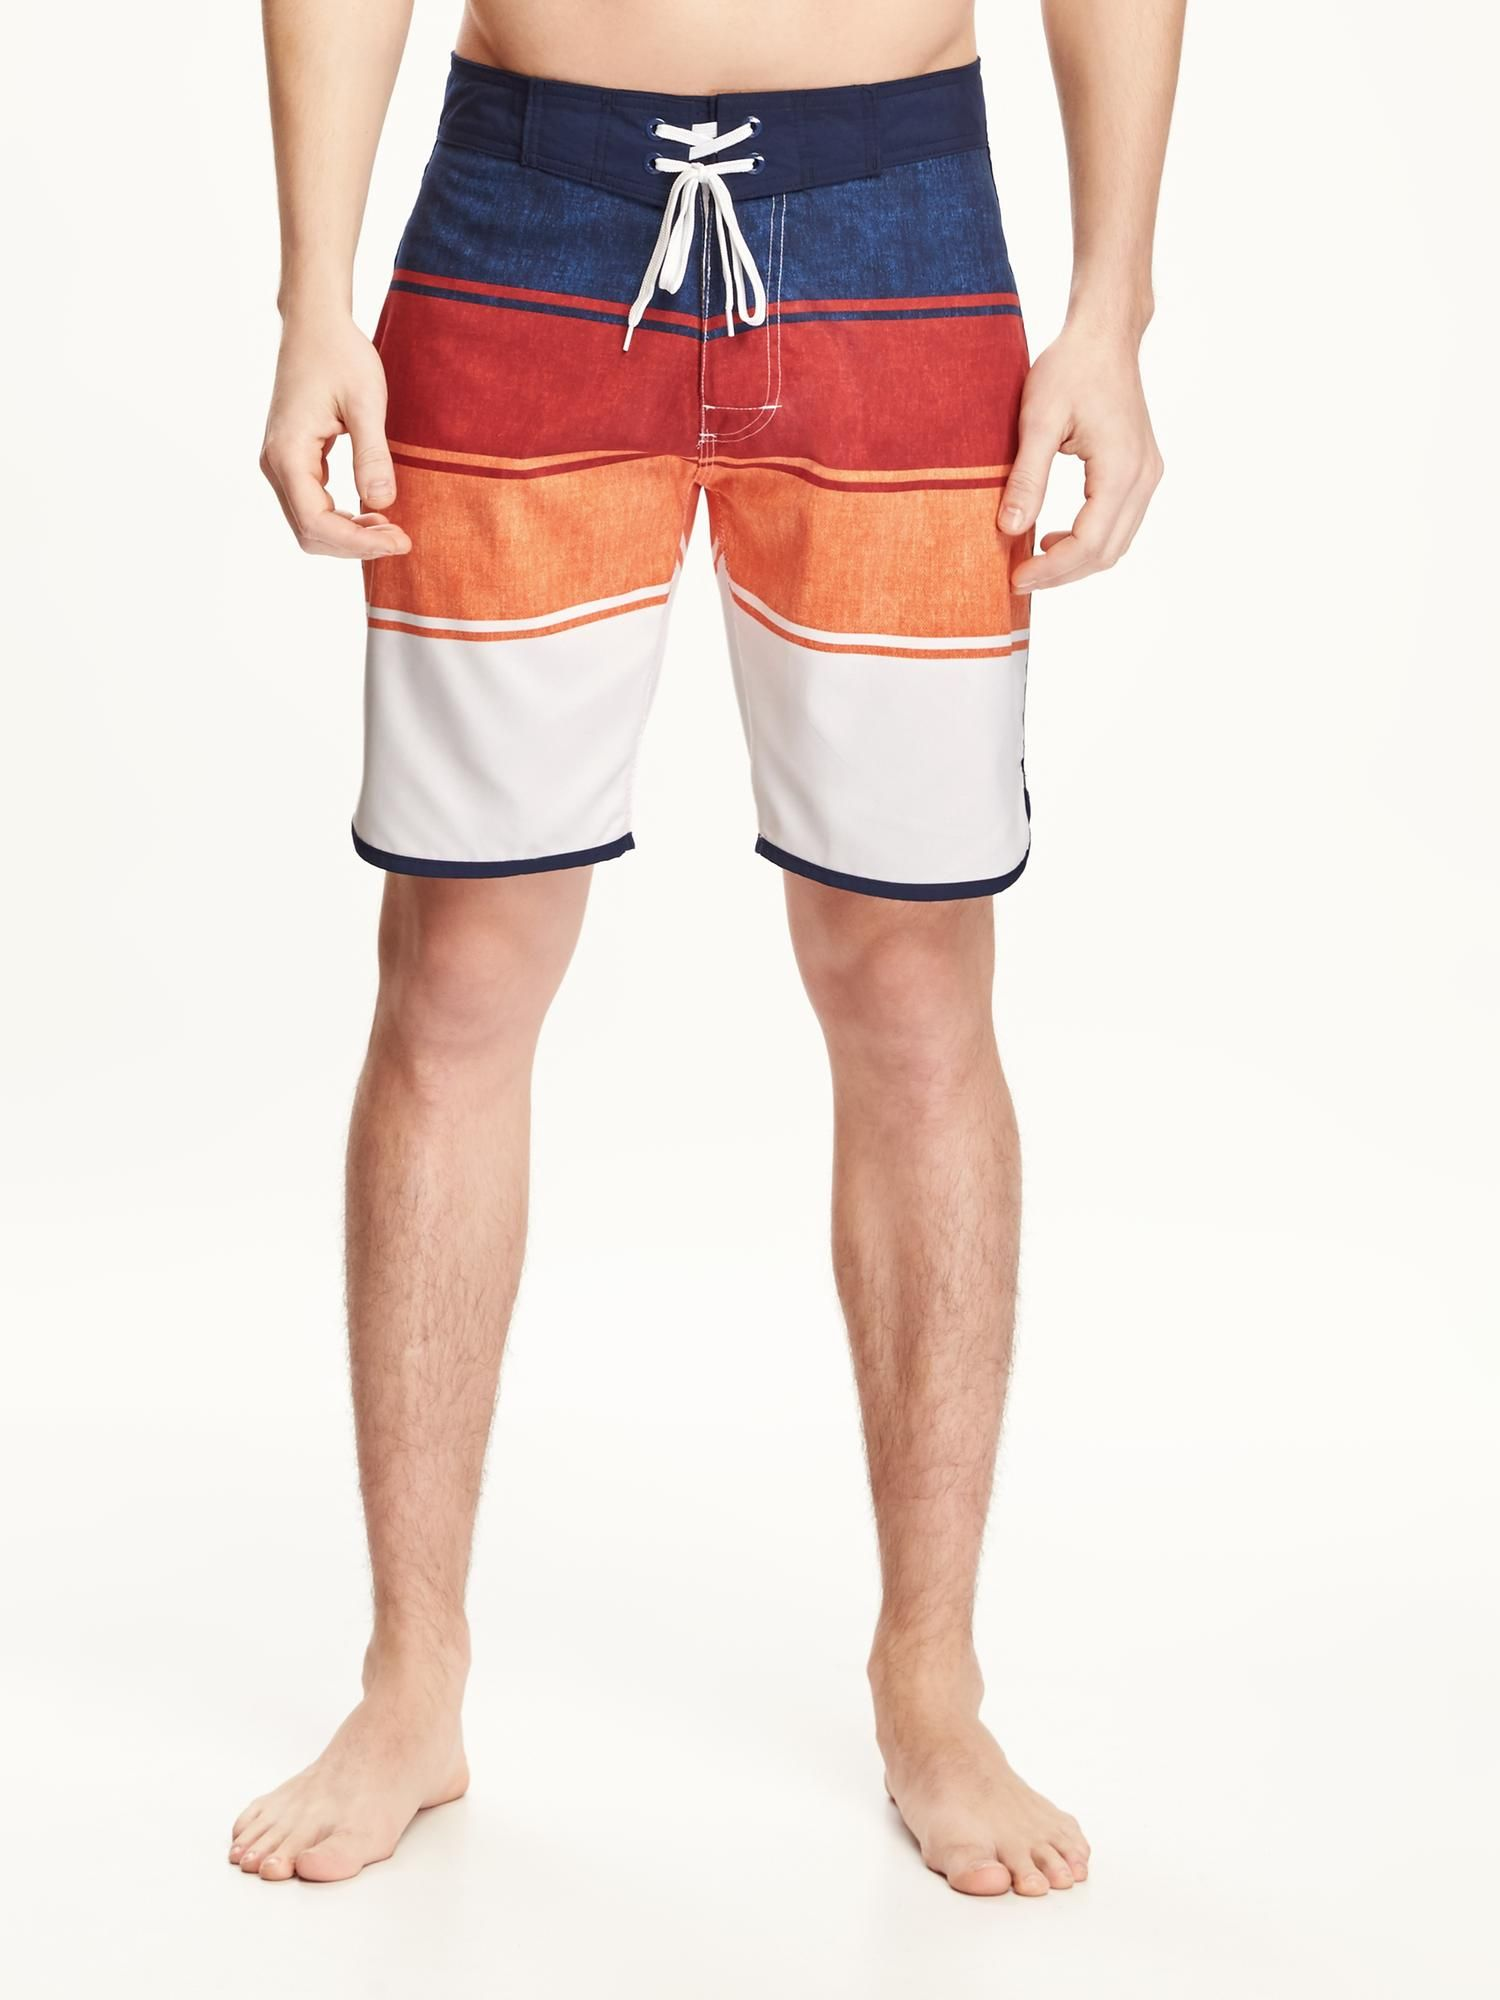 d4757402d7 Striped Board Shorts for Men (9 | Suits for swimming | Mens swim ...